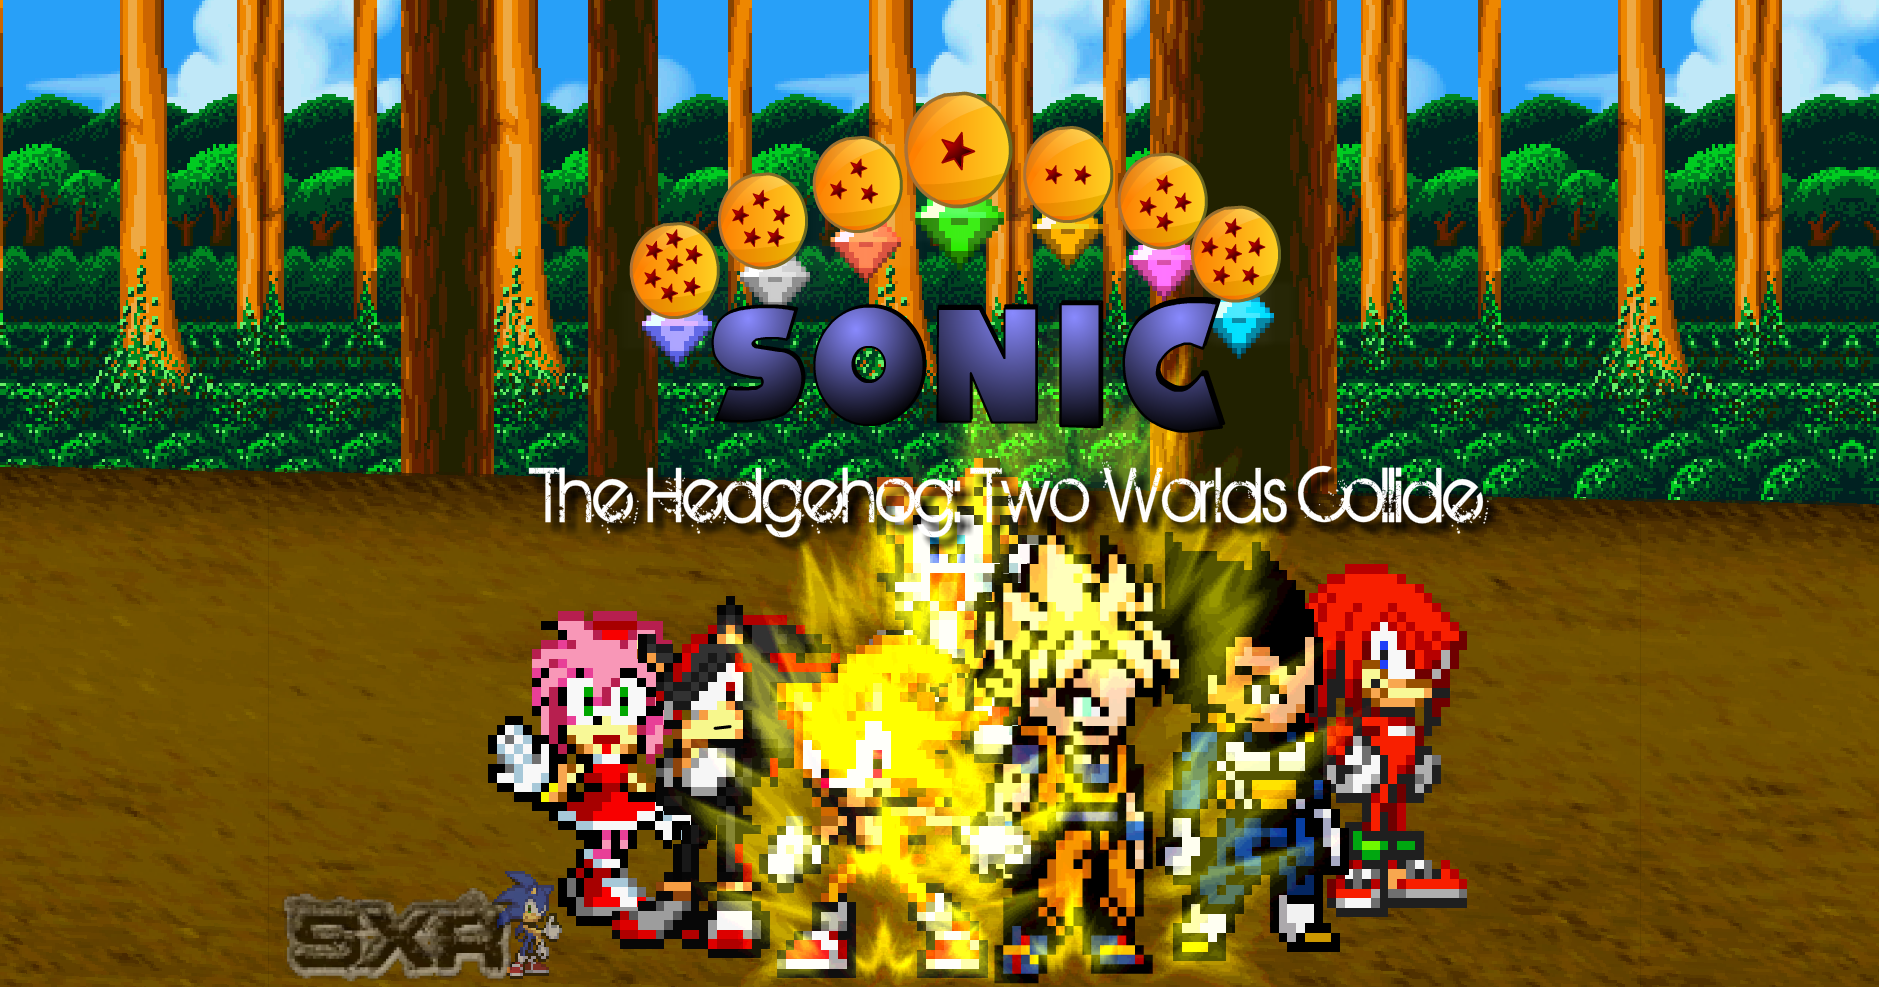 Merry Christmas Everyone! - Page 4 Sth__two_worlds_collide_poster_by_sxr123-d5fsnsb